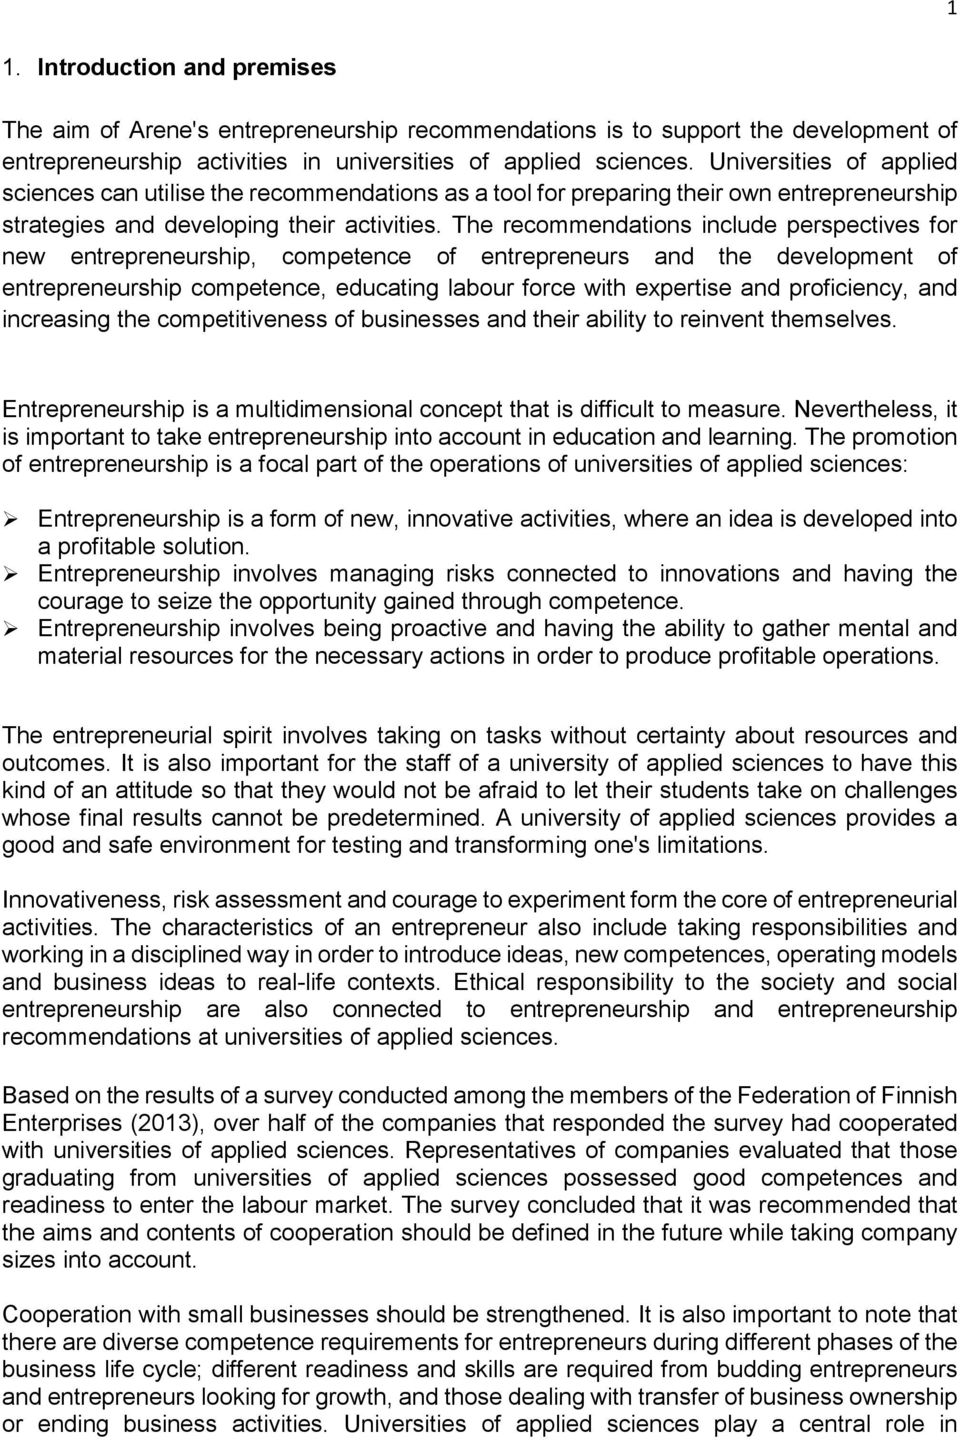 The recommendations include perspectives for new entrepreneurship, competence of entrepreneurs and the development of entrepreneurship competence, educating labour force with expertise and